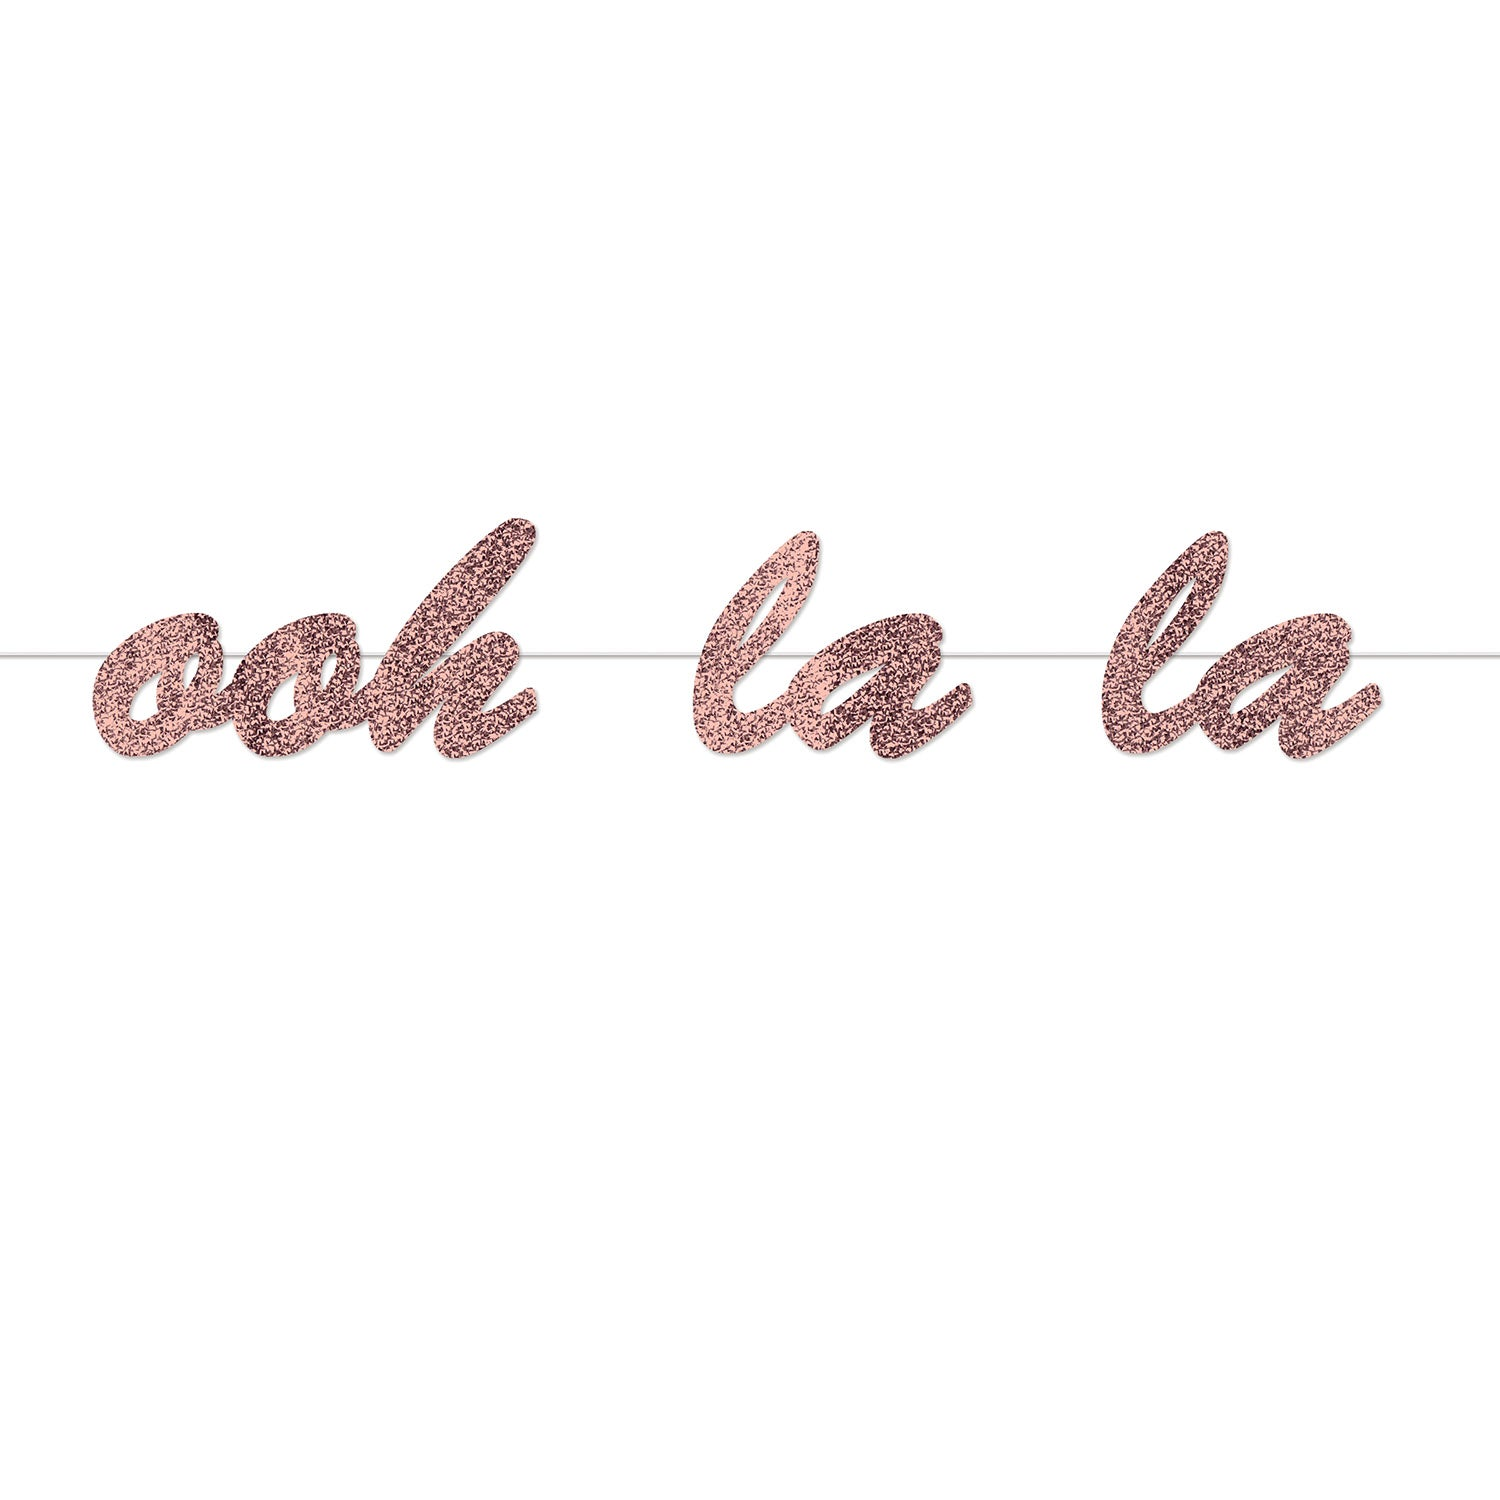 Ooh La La Streamer by Beistle - French Theme Decorations